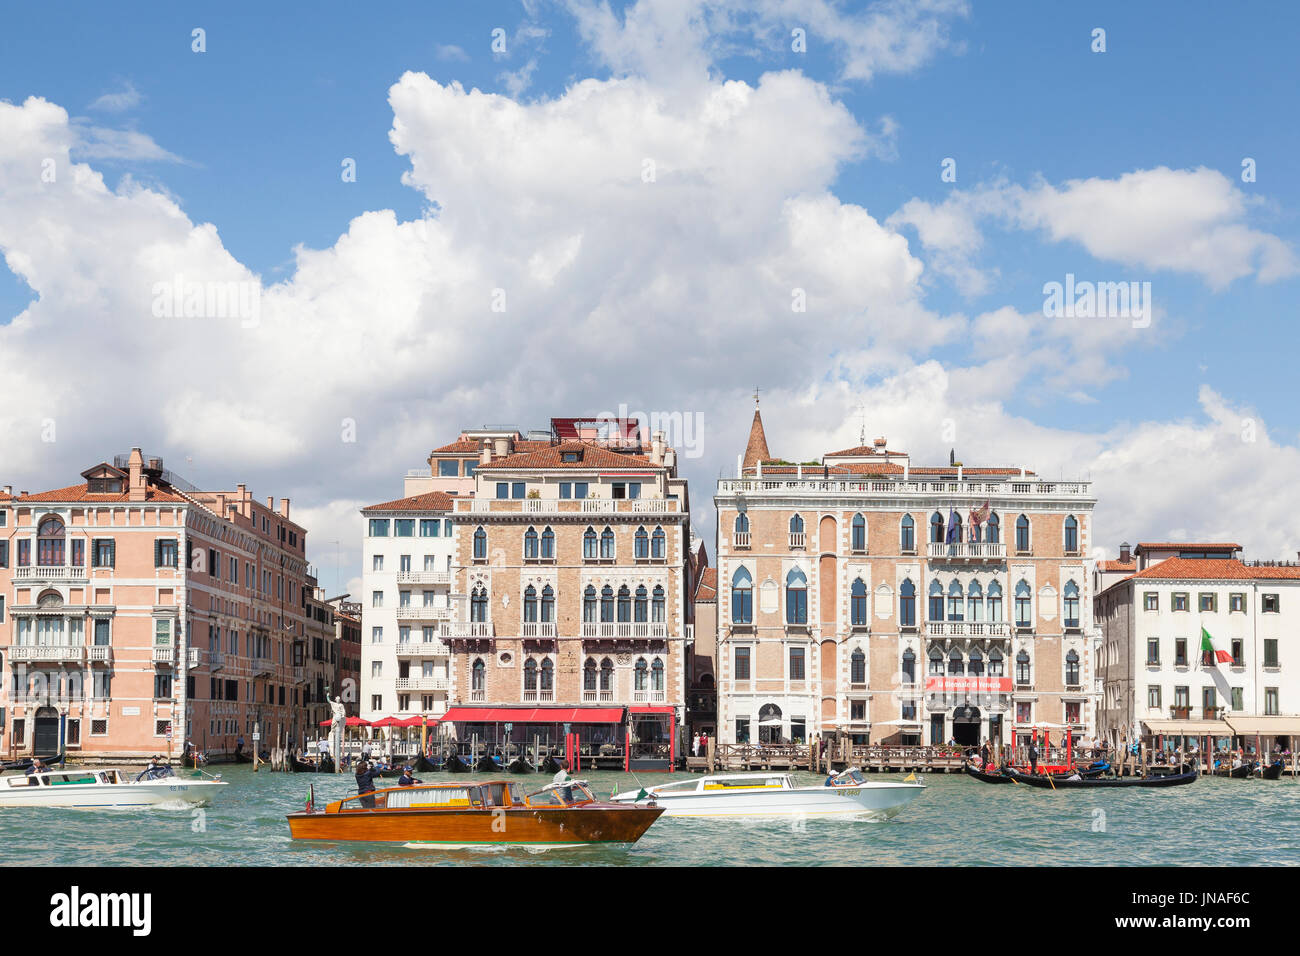 April 2017 Grand Canal, Venice, Veneto, Italy. Boat traffic with water  taxis and gondolas  under dramatic white cumulus clouds passing the Bauer Hote - Stock Image